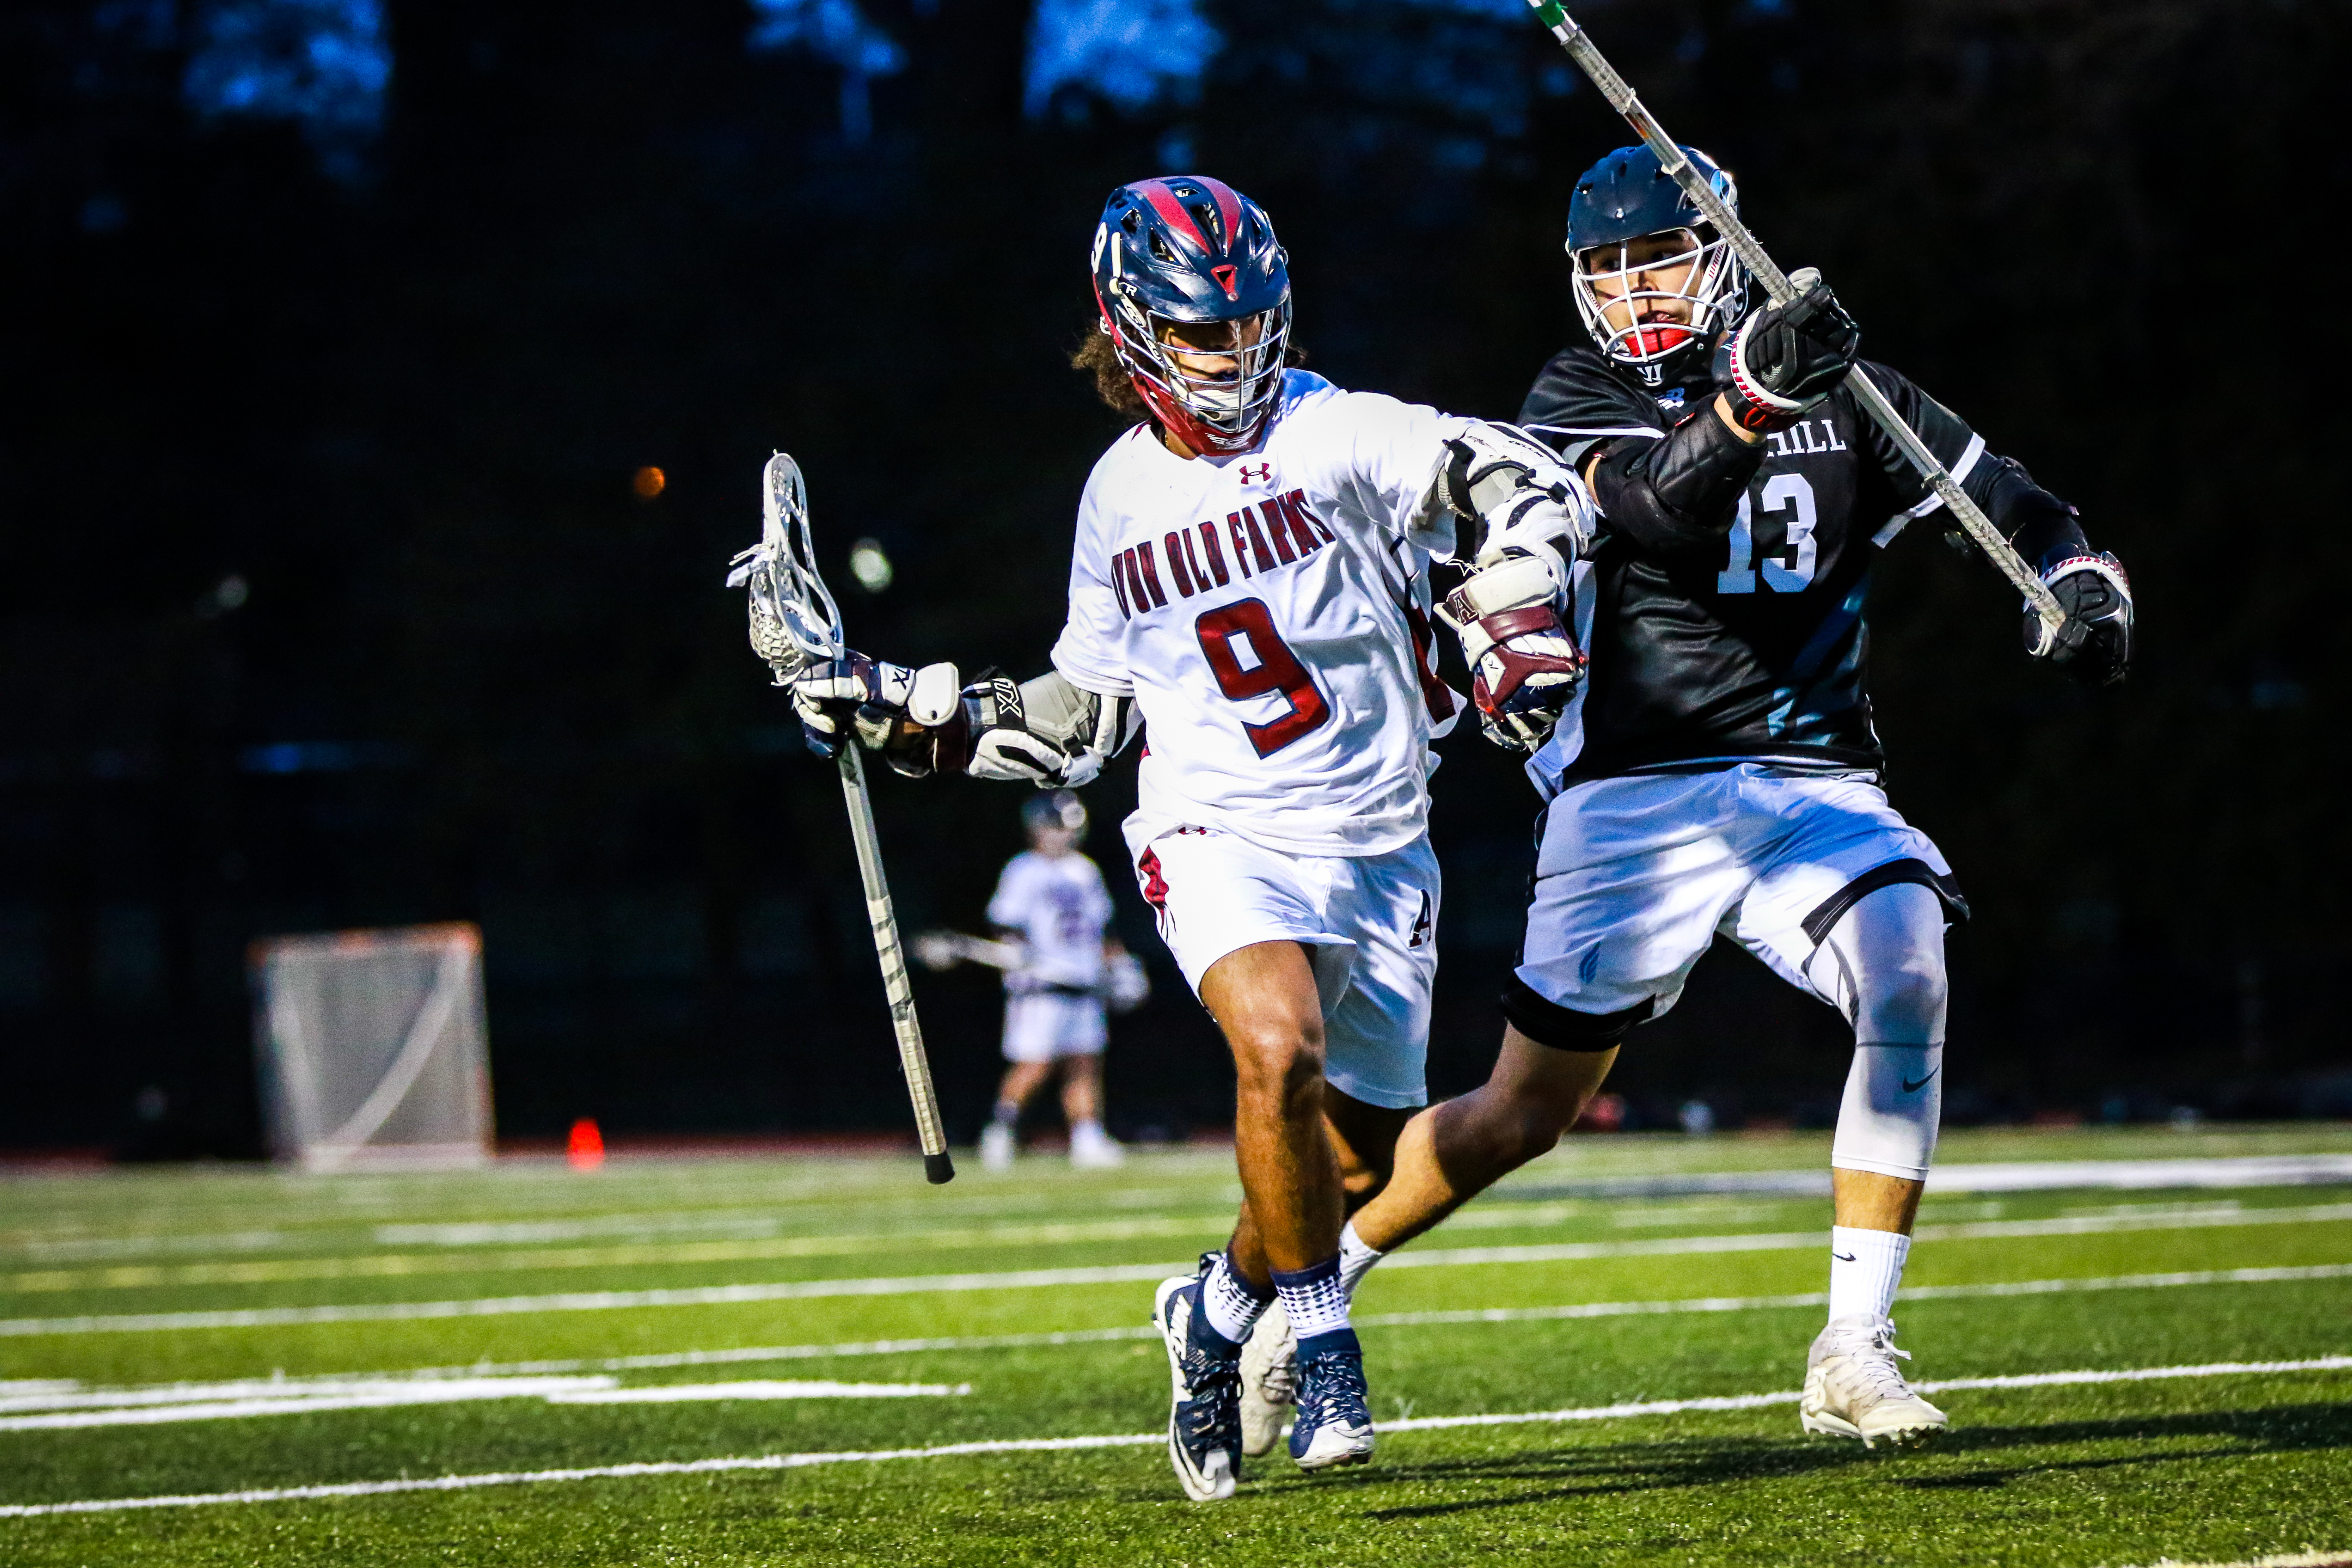 Seven Avonians Make New England 100 List for Lacrosse